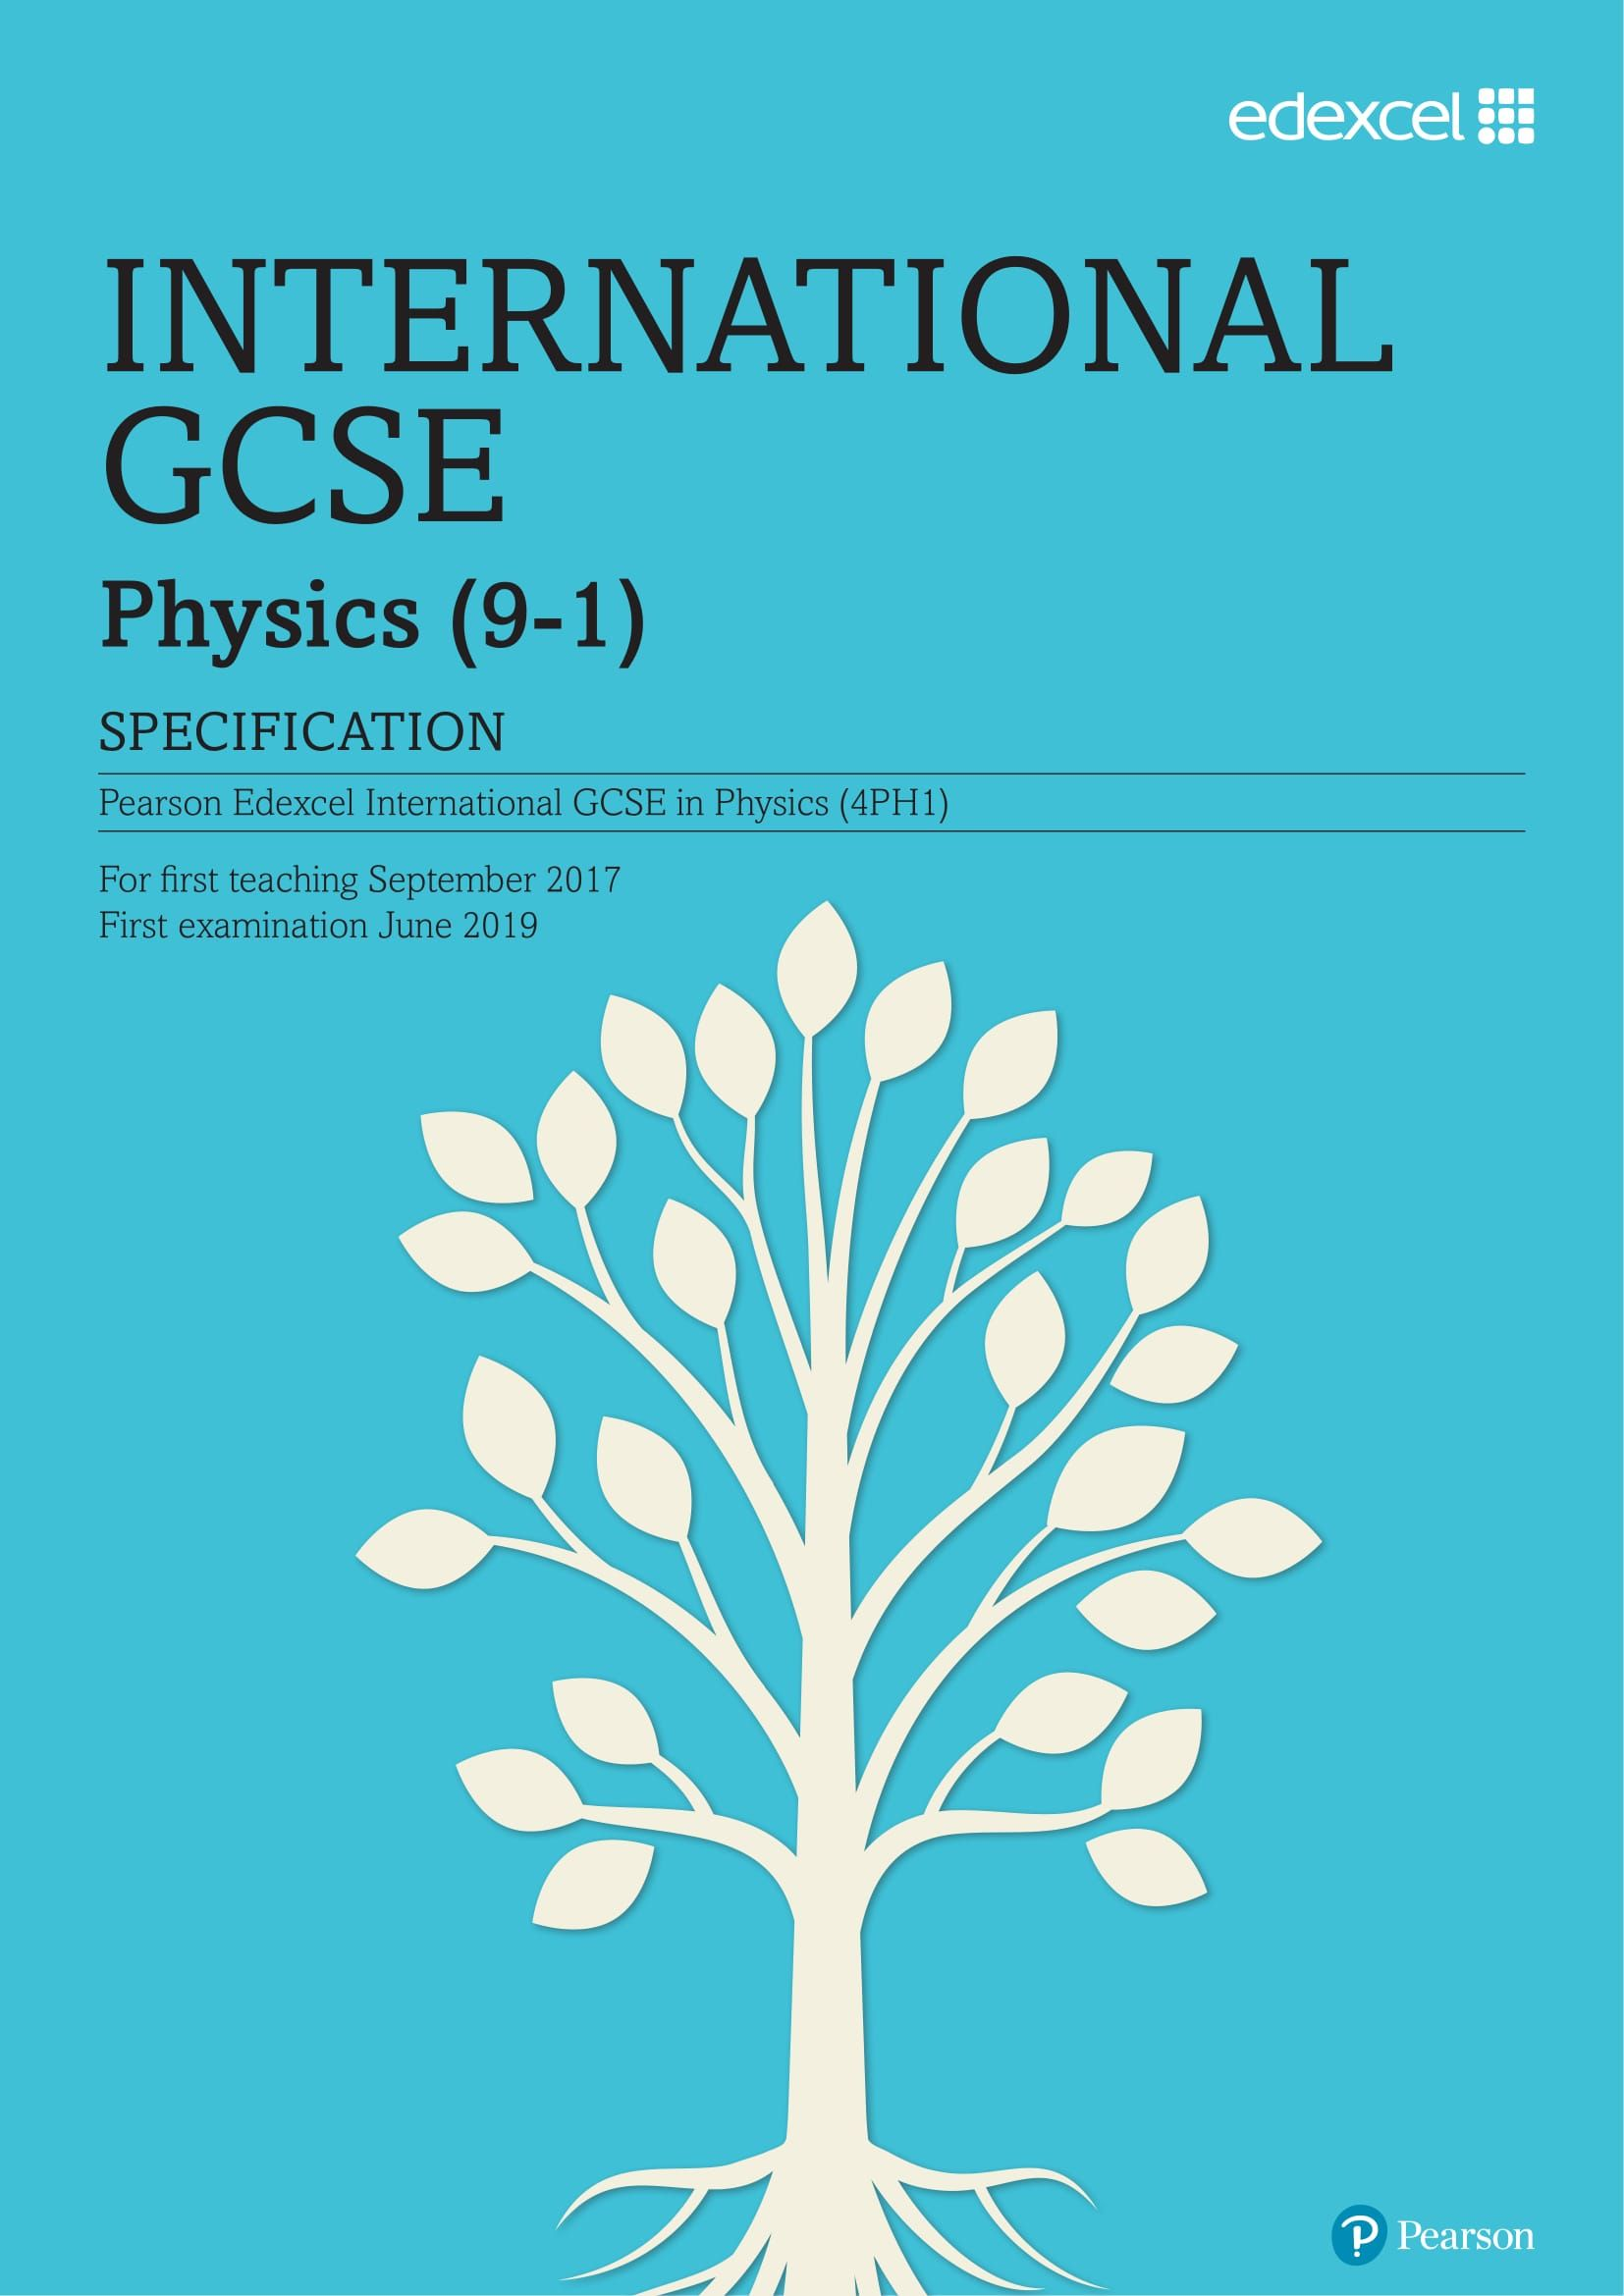 Edexcel International GCSE Physics Syllabus 4PH1 - IGCSE Physics